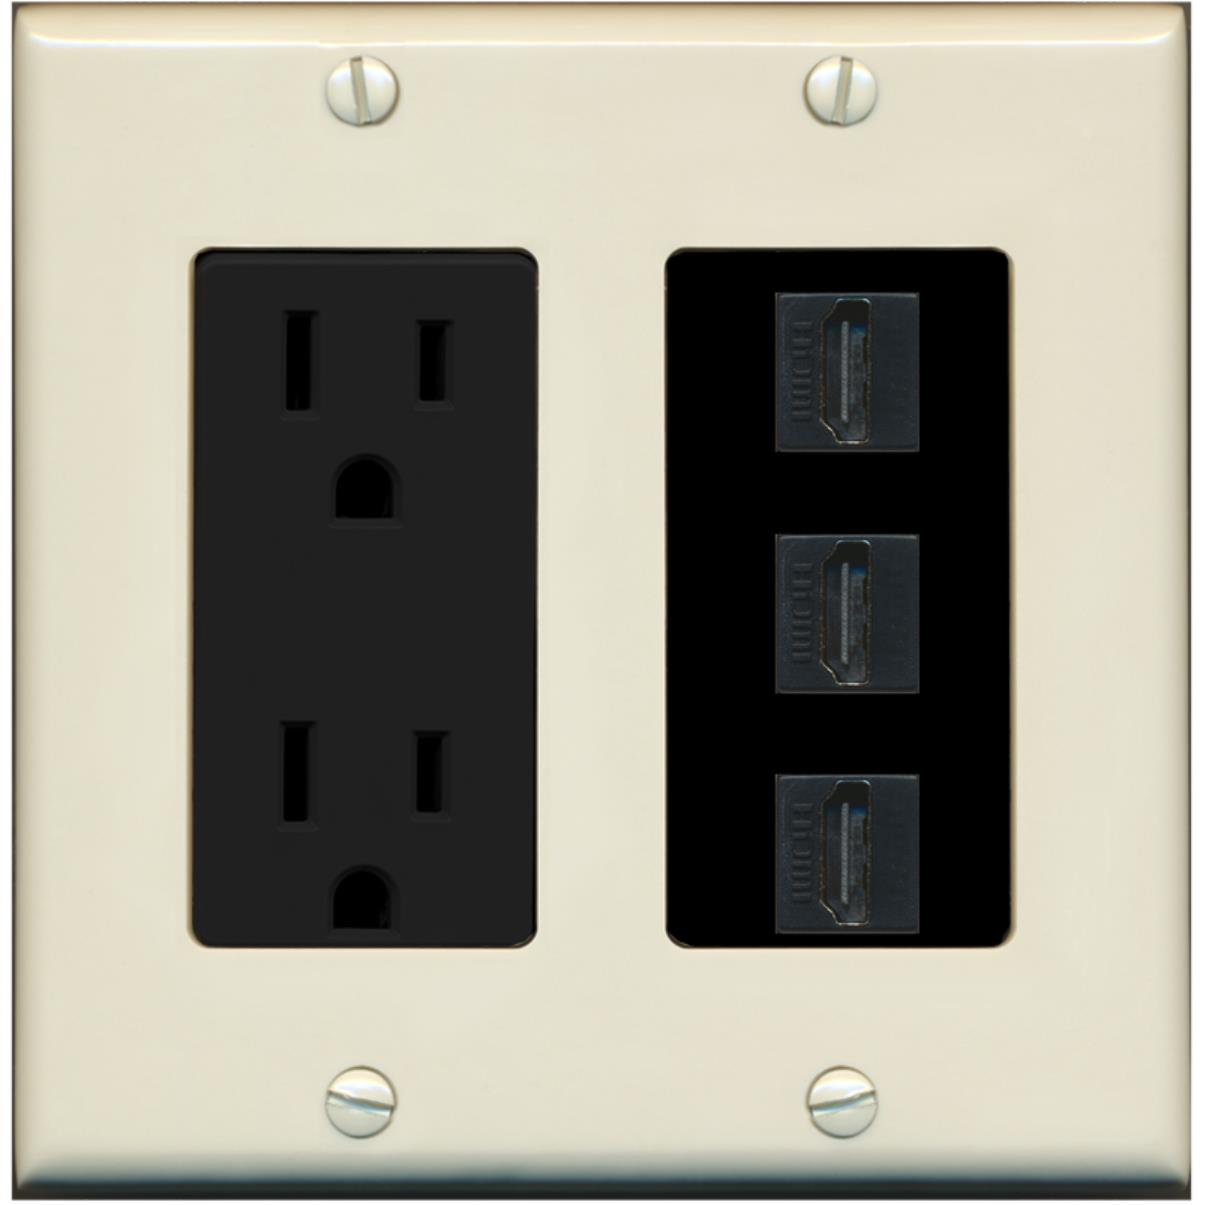 RiteAV - 15 Amp Power Outlet 3 Port HDMI Decora Wall Plate - Light Almond/Black